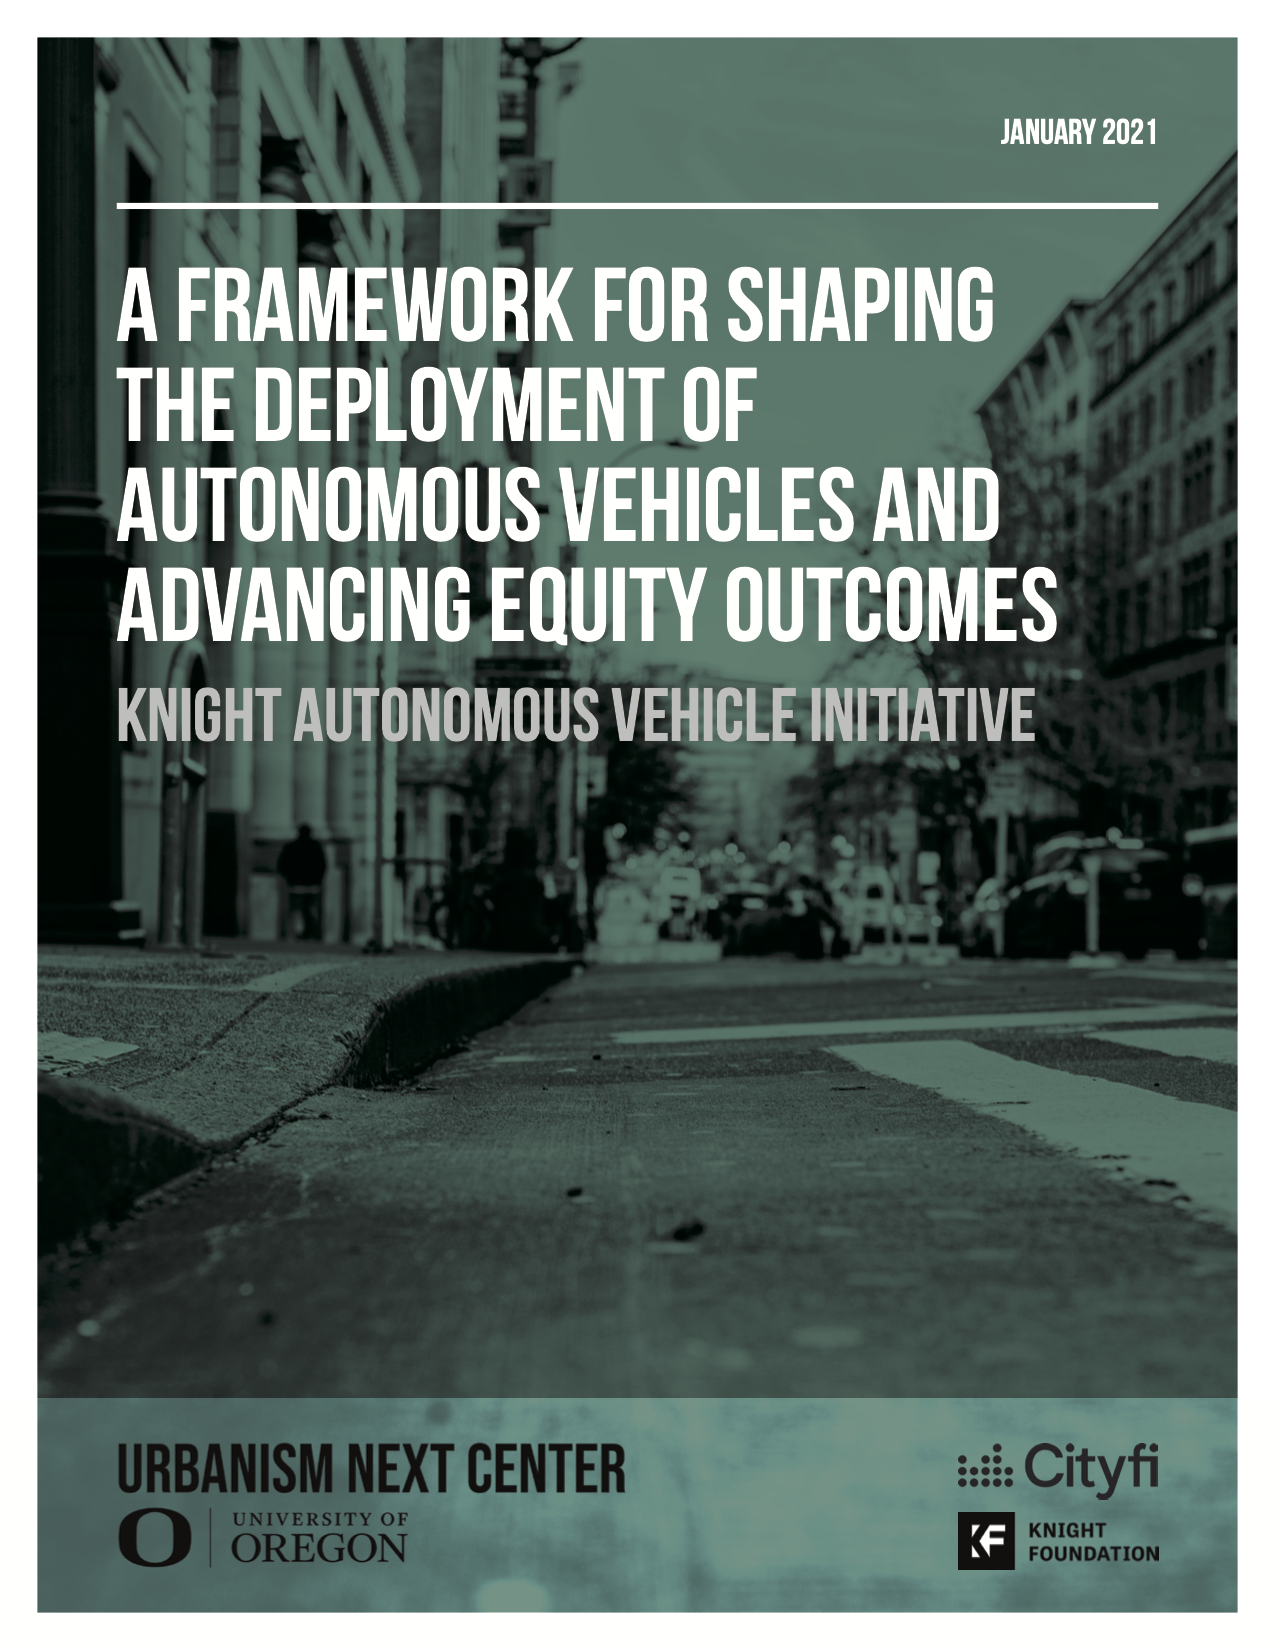 A Framework for Shaping the Deployment of Autonomous Vehicles and Advancing Equity Outcomes